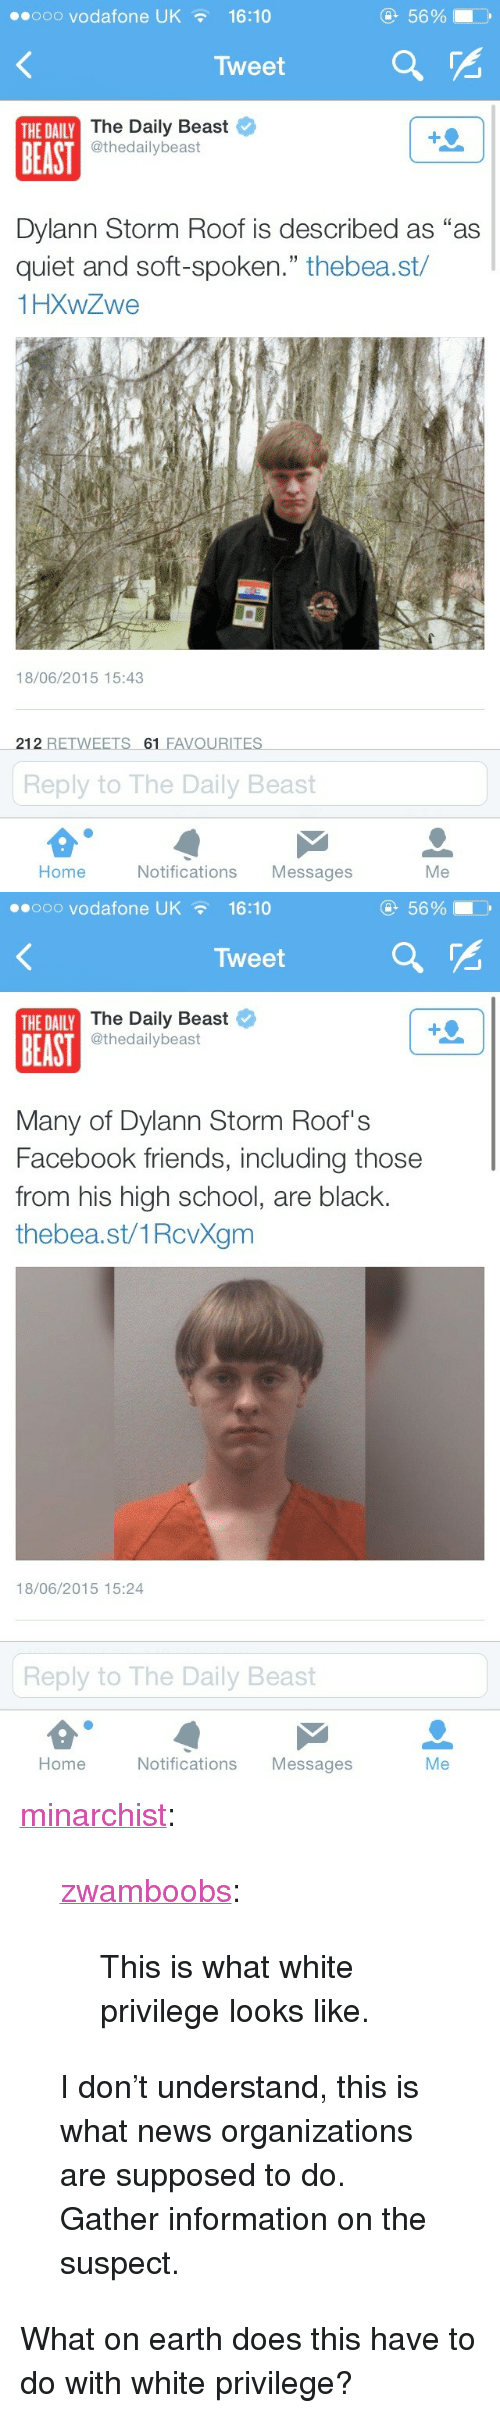 "Facebook, Friends, and News: eooo vodafone UK16:10  5690  Tweet  The Daily Beast  @thedailybeast  THE DAILY  BEAST  Dylann Storm Roof is described as ""as  quiet and soft-spoken."" thebea.st/  1HXWZwe  18/06/2015 15:43  212 RETWEETS 61 FAVOURITES  Reply to The Daily Beast  Home  Notifications Messages  Me   ..ooo vodafone UK  16:10  5690  Tweet  The Daily Beast  @thedailybeast  THE DAILY  BEAST  Many of Dylann Storm Roof's  Facebook friends, including those  from his high school, are black.  thebea.st/1RcvXgm  18/06/2015 15:24  Reply to The Daily Beast  Home  Notifications Messages  Me <p><a class=""tumblr_blog"" href=""http://minarchist.tumblr.com/post/121847656894/zwamboobs-this-is-what-white-privilege-looks"">minarchist</a>:</p>  <blockquote><p><a class=""tumblr_blog"" href=""http://zwamboobs.tumblr.com/post/121841004836/this-is-what-white-privilege-looks-like"">zwamboobs</a>:</p>  <blockquote><p>This is what white privilege looks like.</p></blockquote>  <p>I don't understand, this is what news organizations are supposed to do. Gather information on the suspect.</p></blockquote>  <p>What on earth does this have to do with white privilege?<br/></p>"